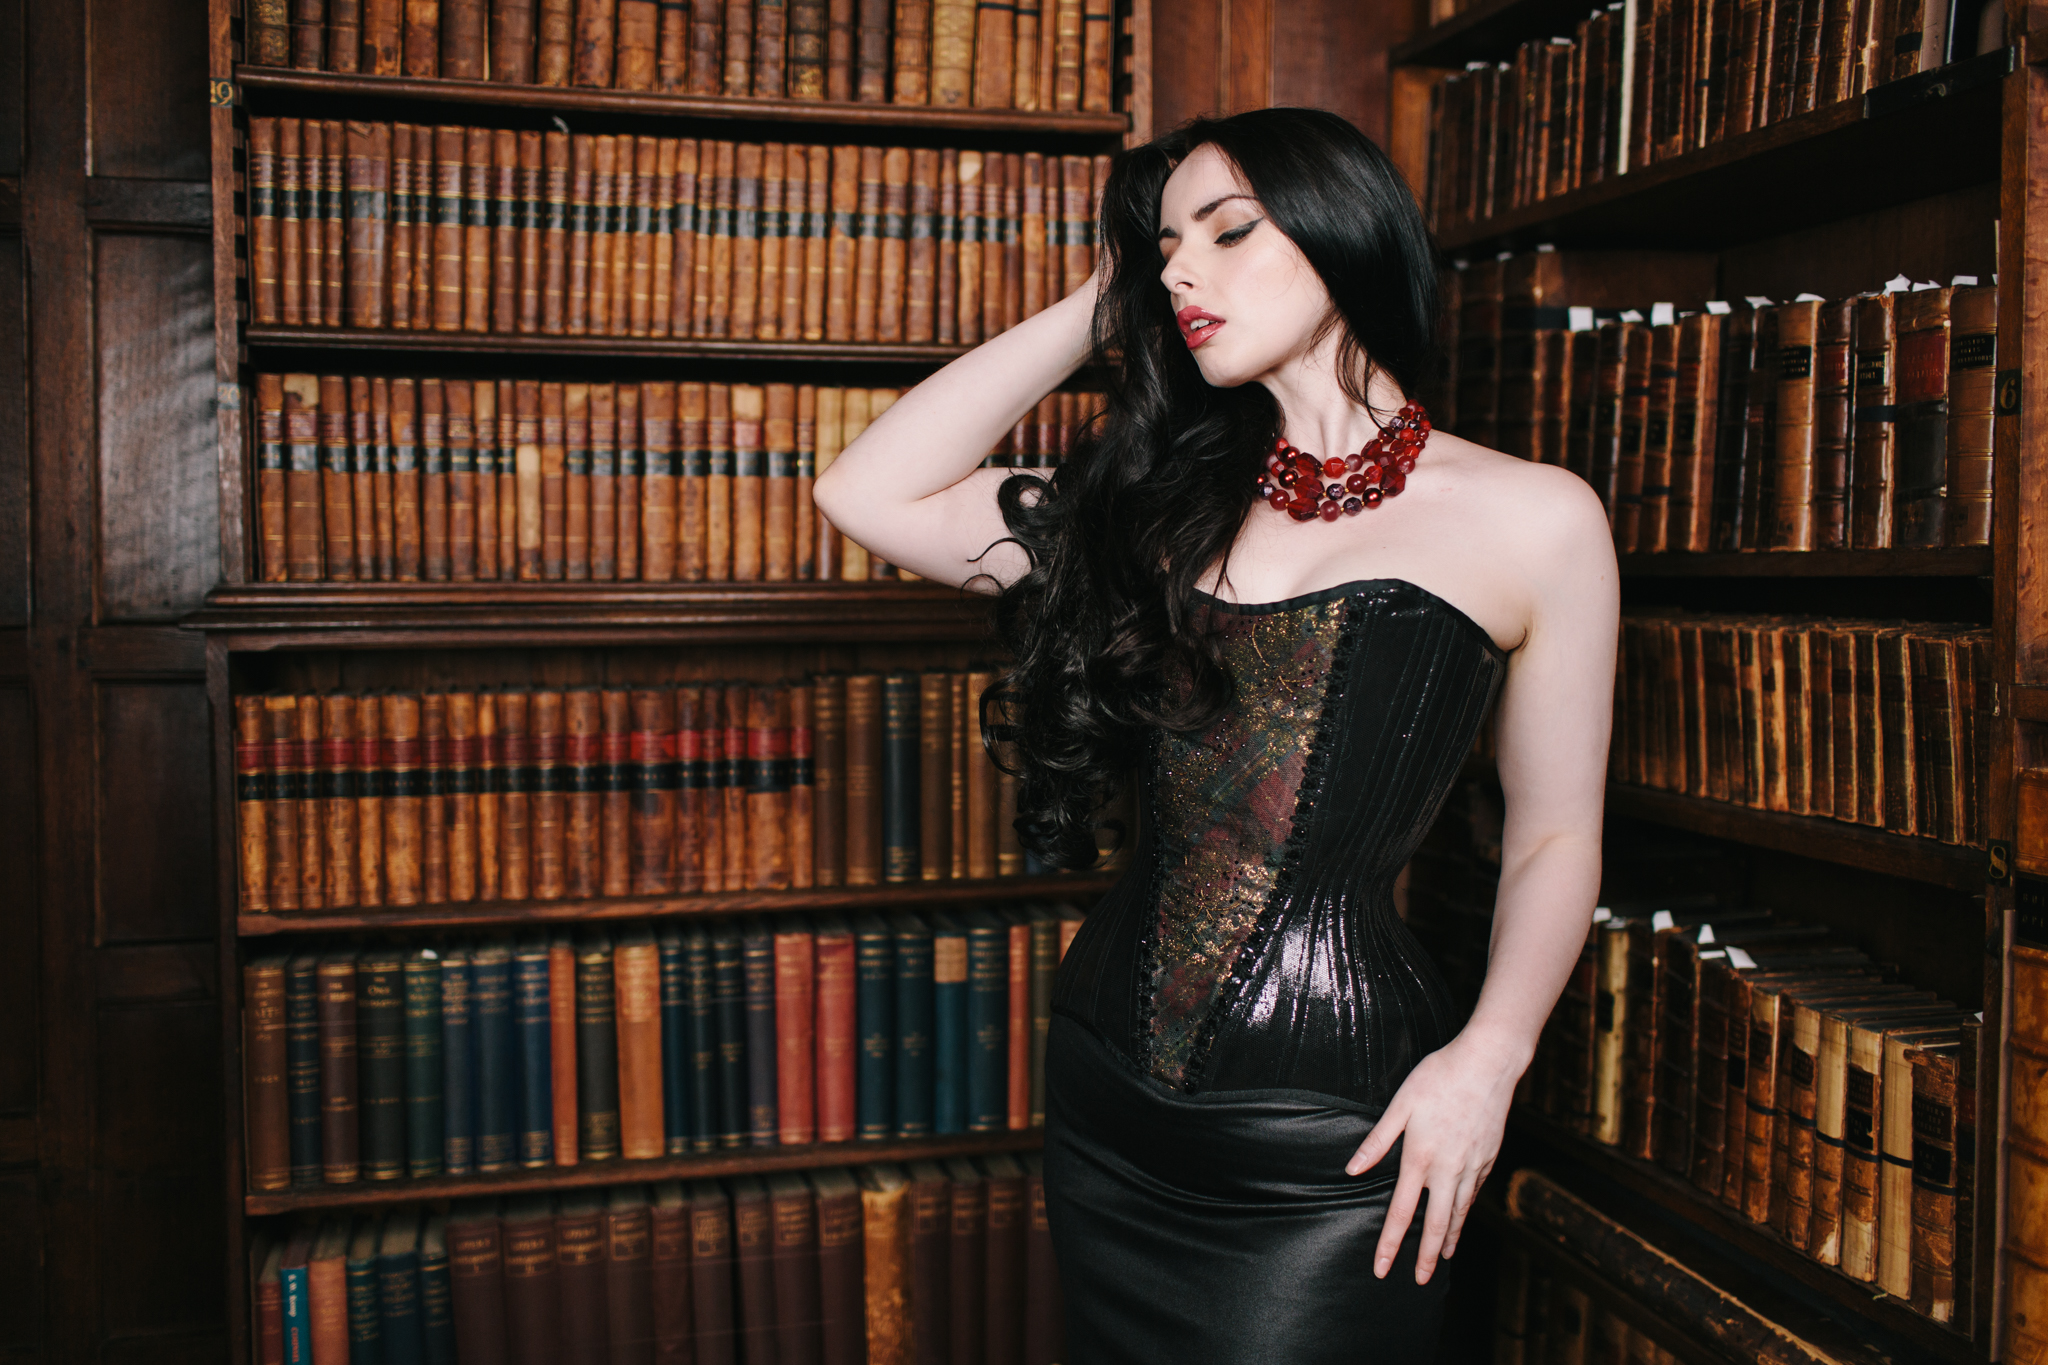 Crikey Aphrodite Scottish Gold corset worn by Liv Free and photographed by Chris Murray in the Library at Jesus College, Oxford